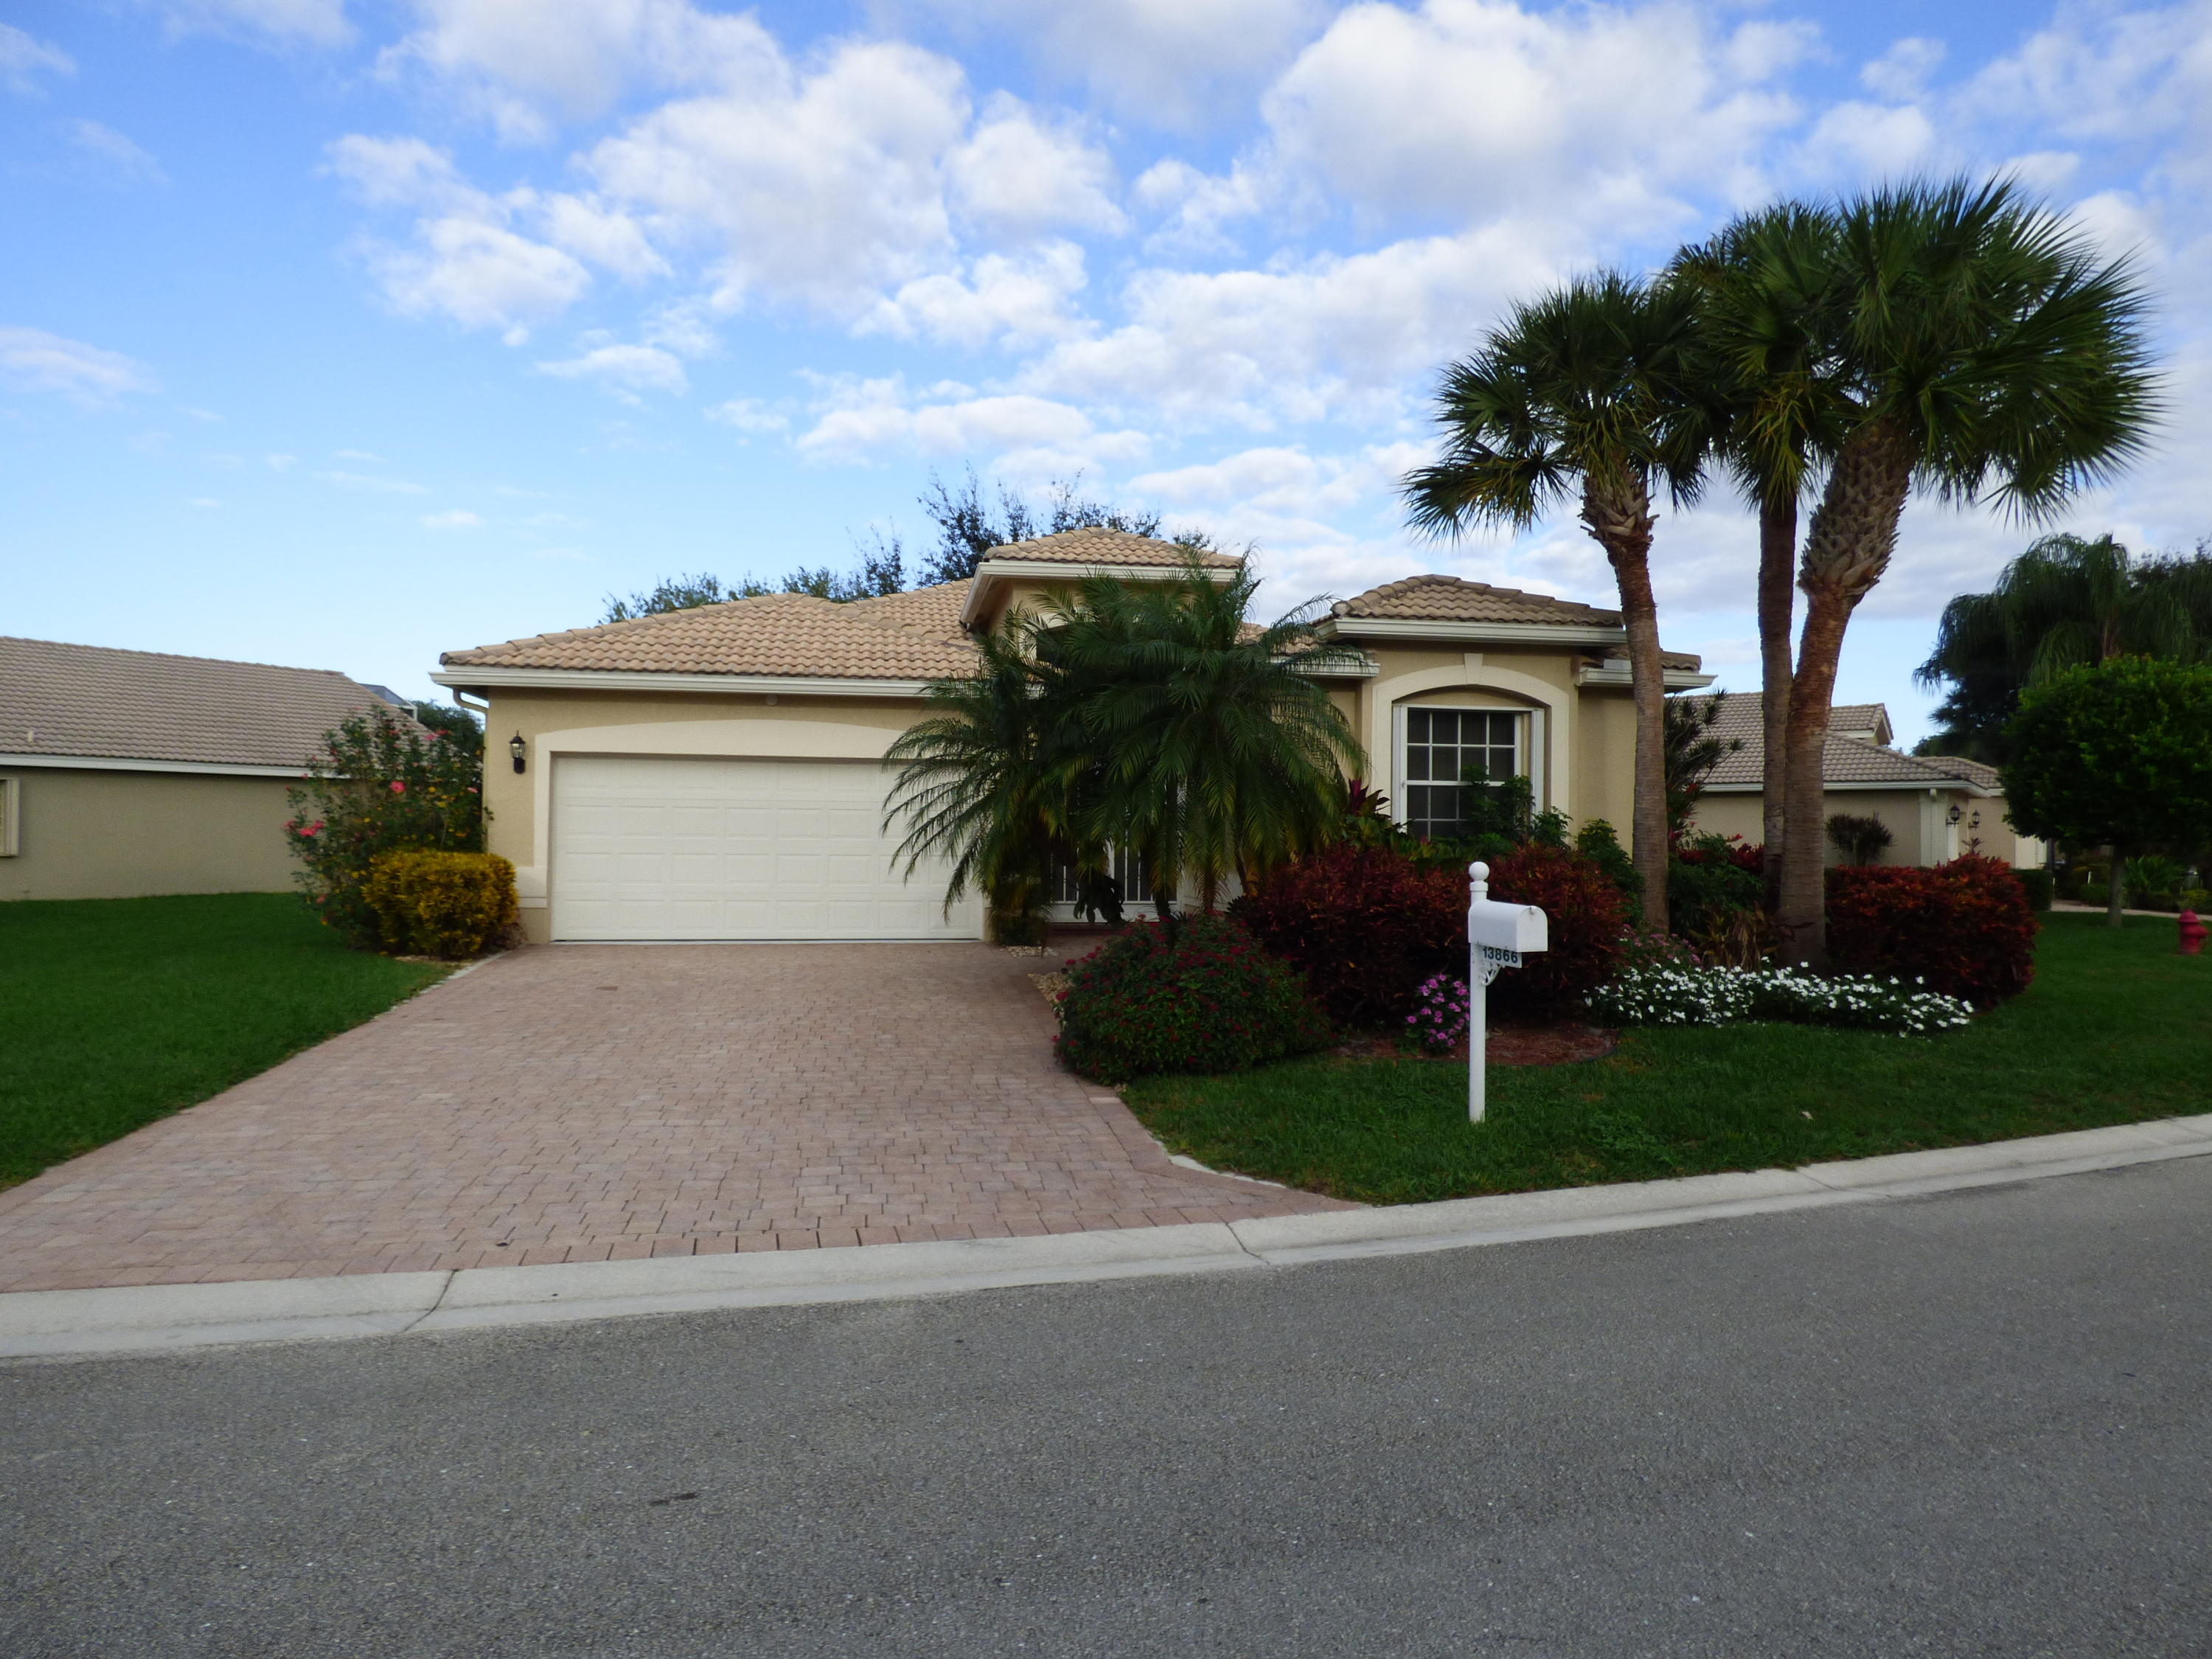 Home for sale in Villa Borghese Delray Beach Florida